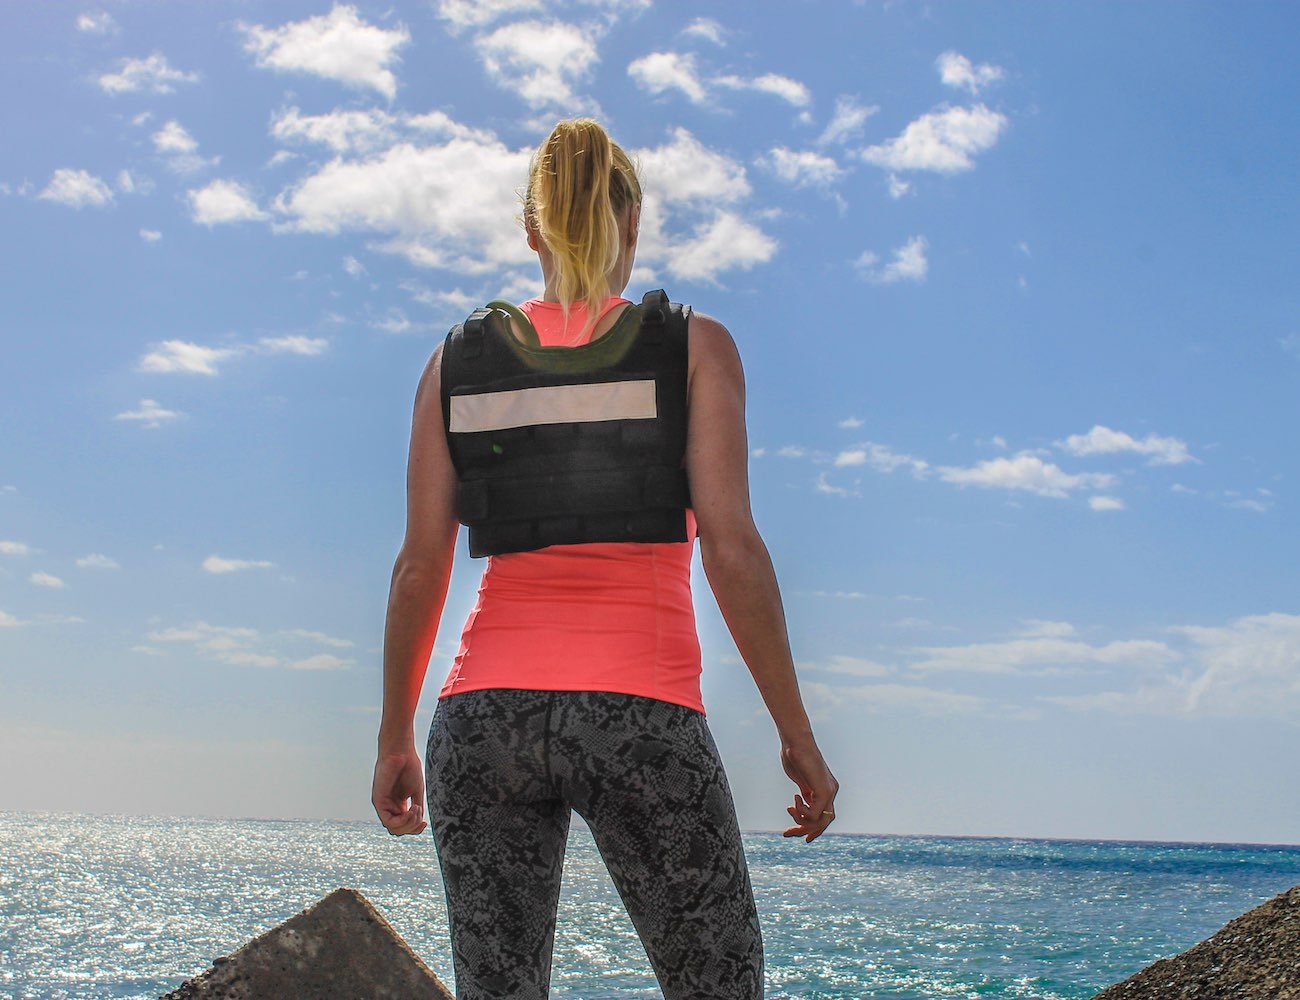 CrossXvest EVO – World's Most Advanced WeightVest with Built-in Hydrationsystem